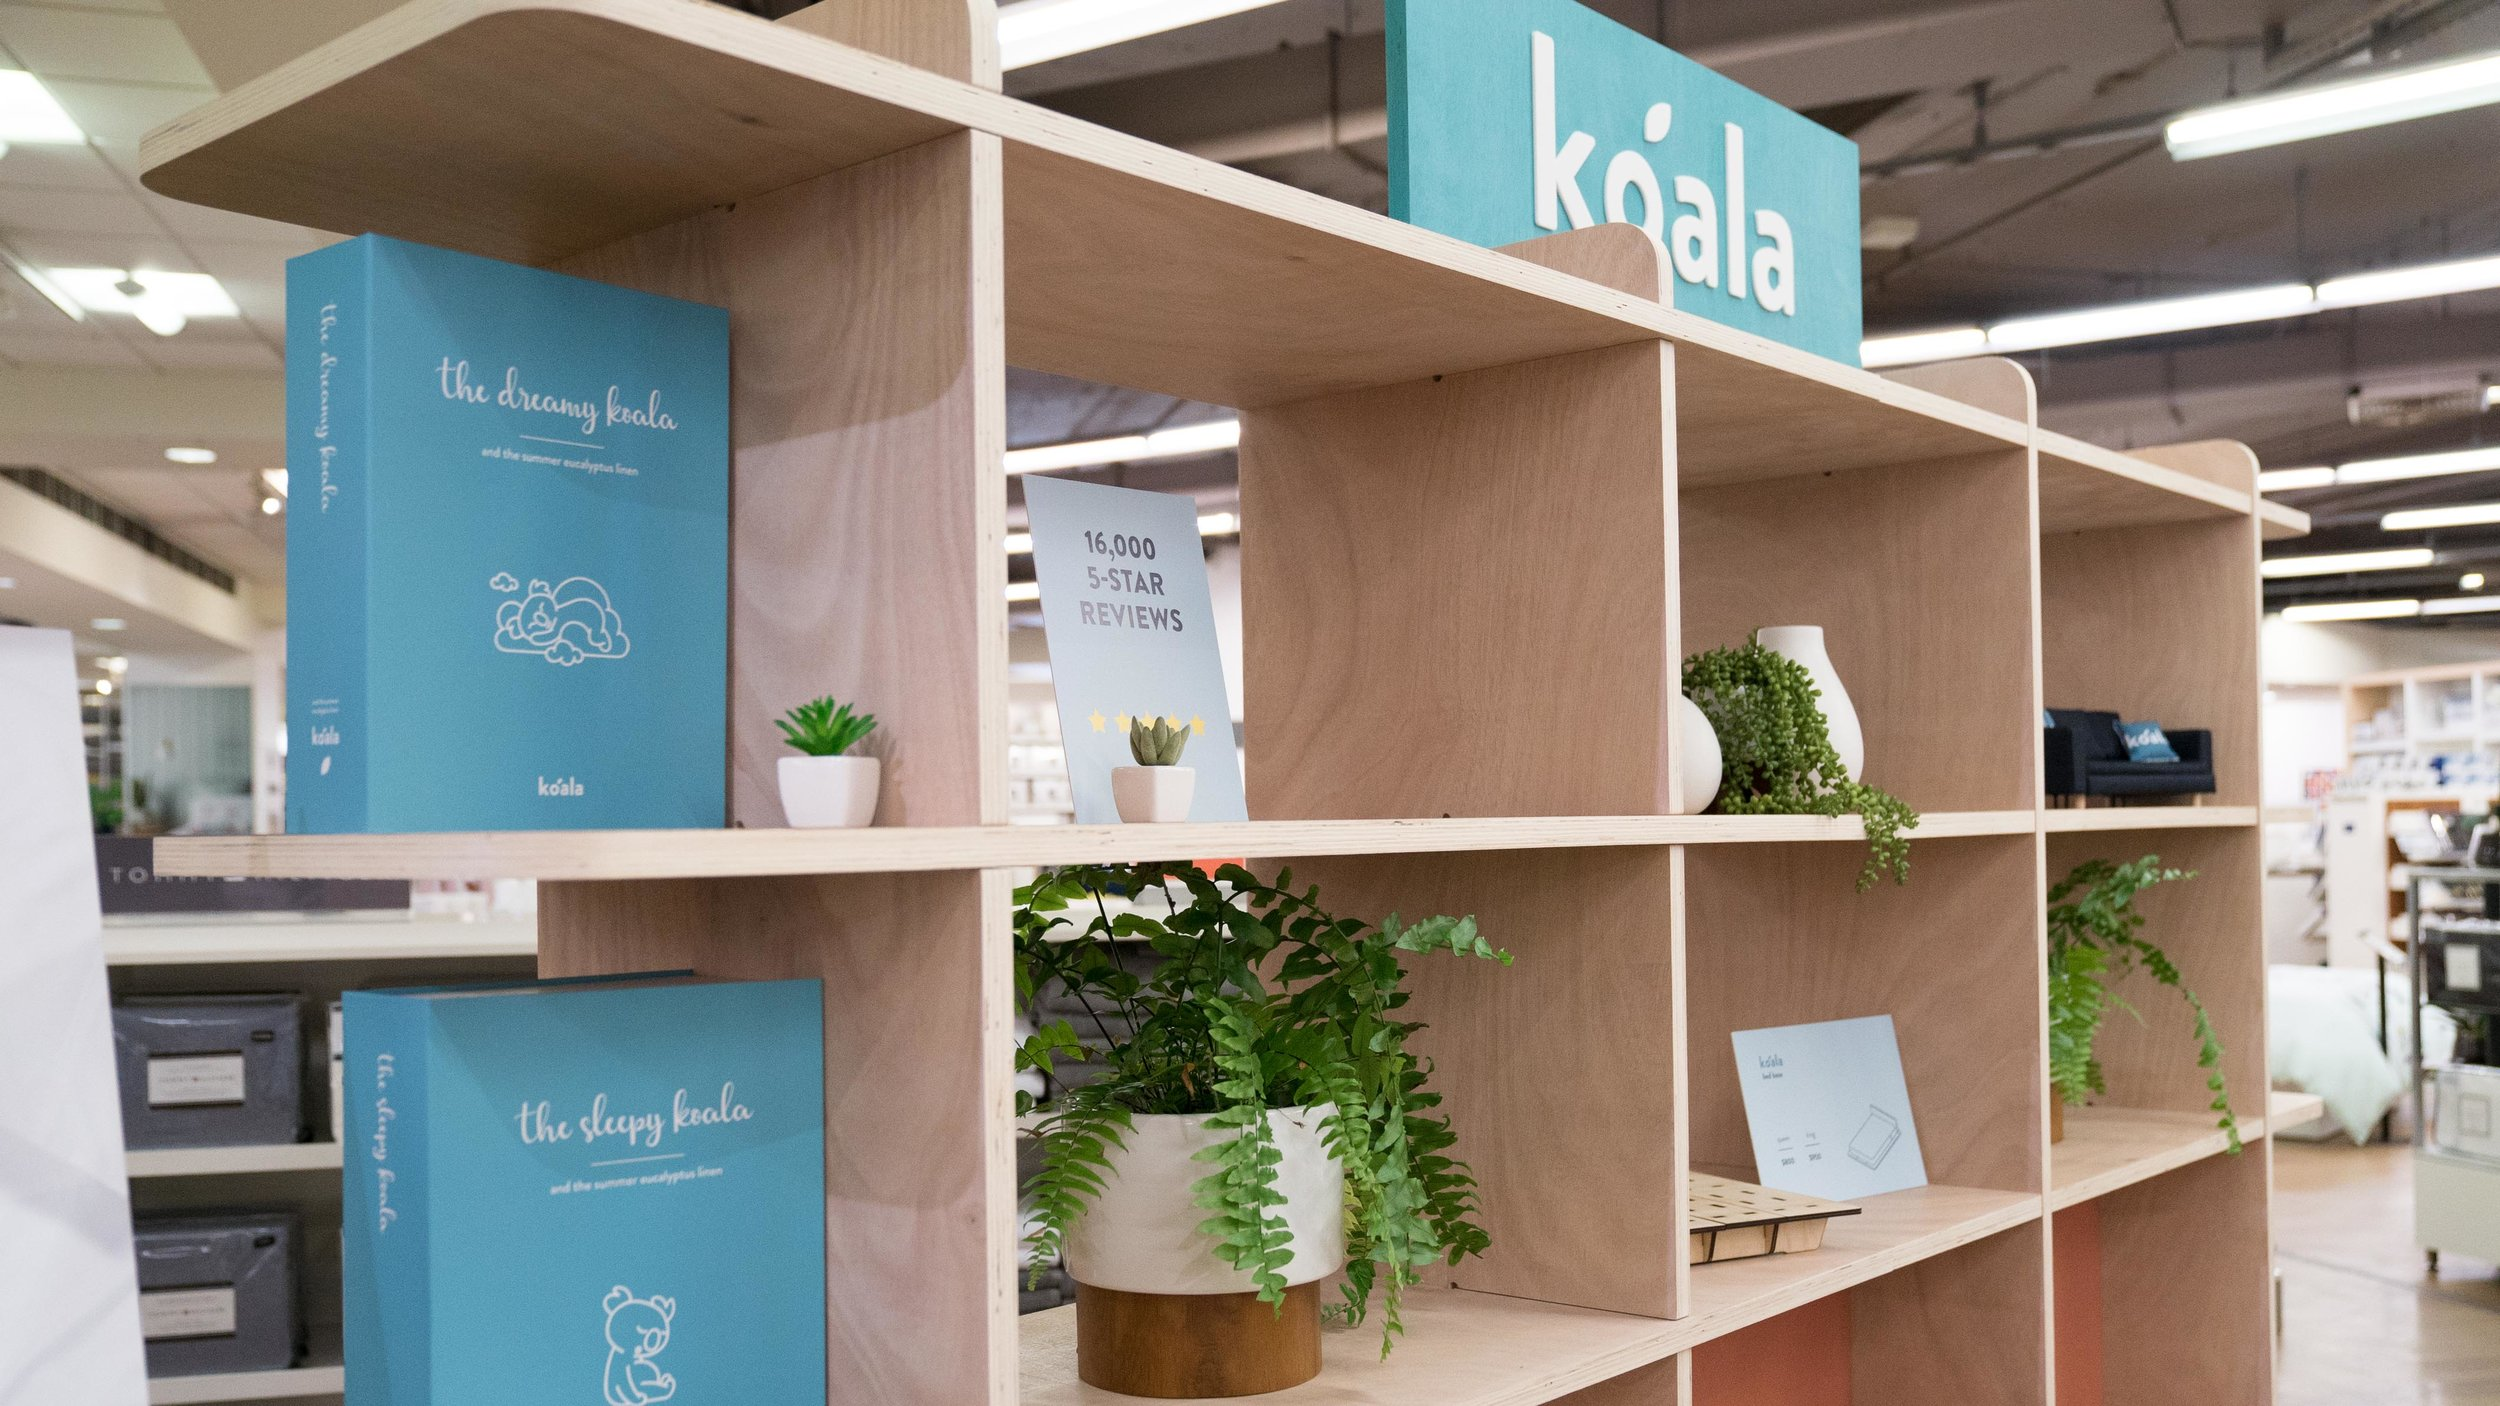 Koala —A unique display for a contemporary retail experience. - Read More ⟶